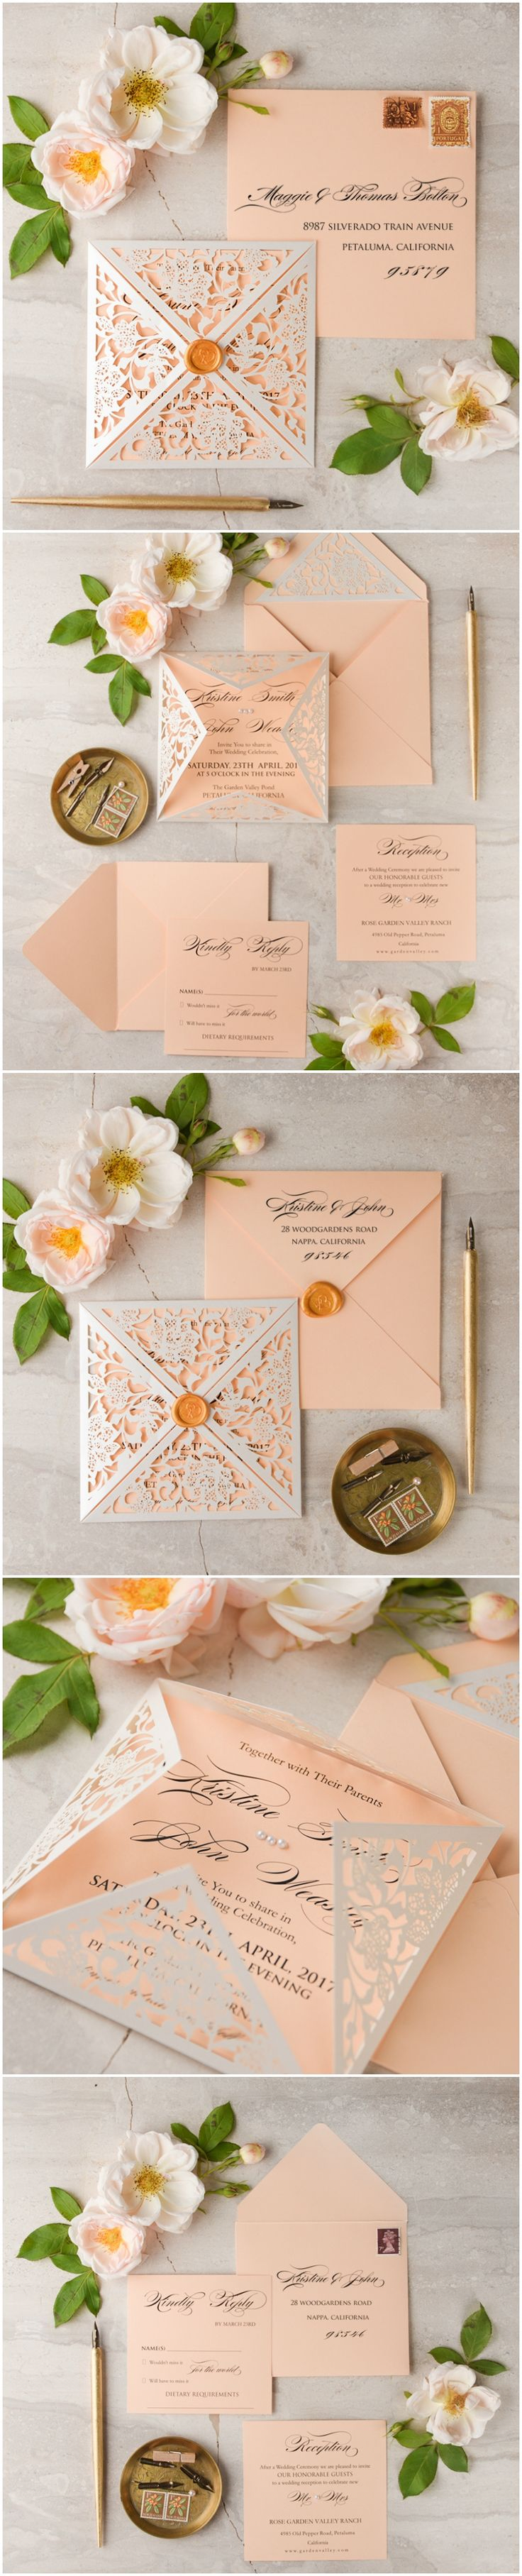 Peach Laser cut Wedding Invitation - calligraphy printing, wax stamping #peach #blush #romantinc #weddingideas #invitations #elegant